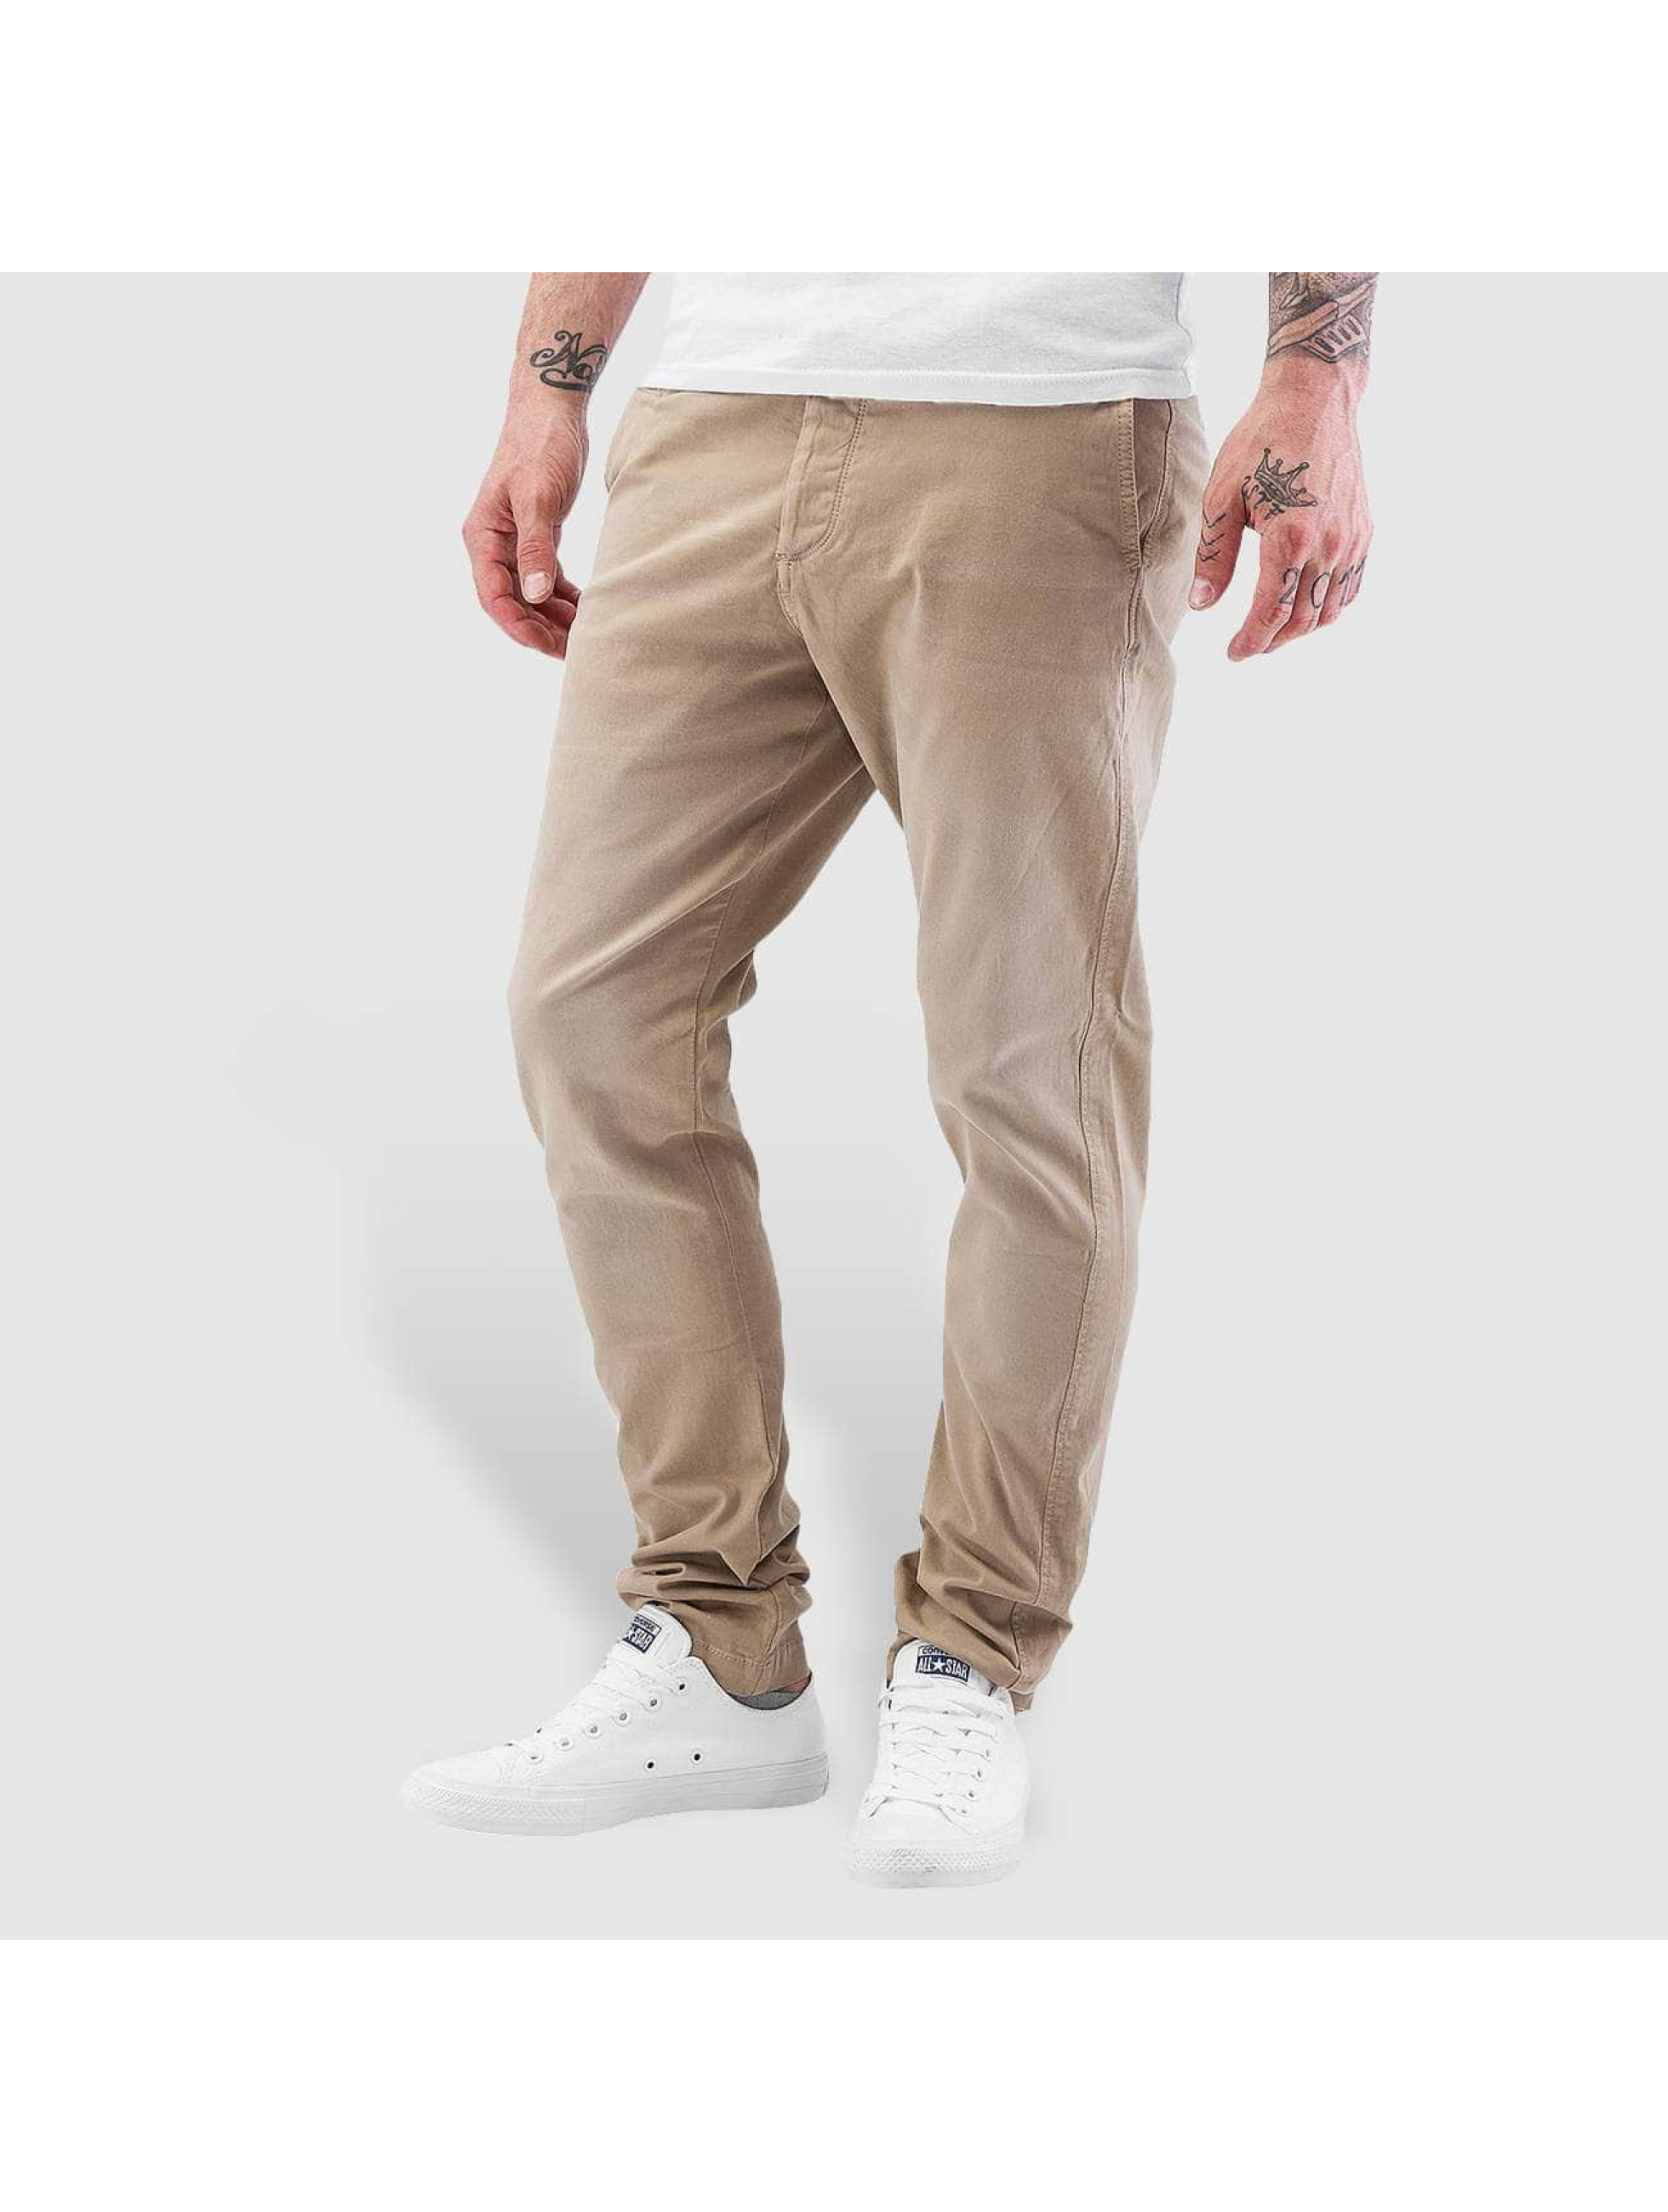 Jack & Jones Pantalon chino jjiCody jjLorenzo beige